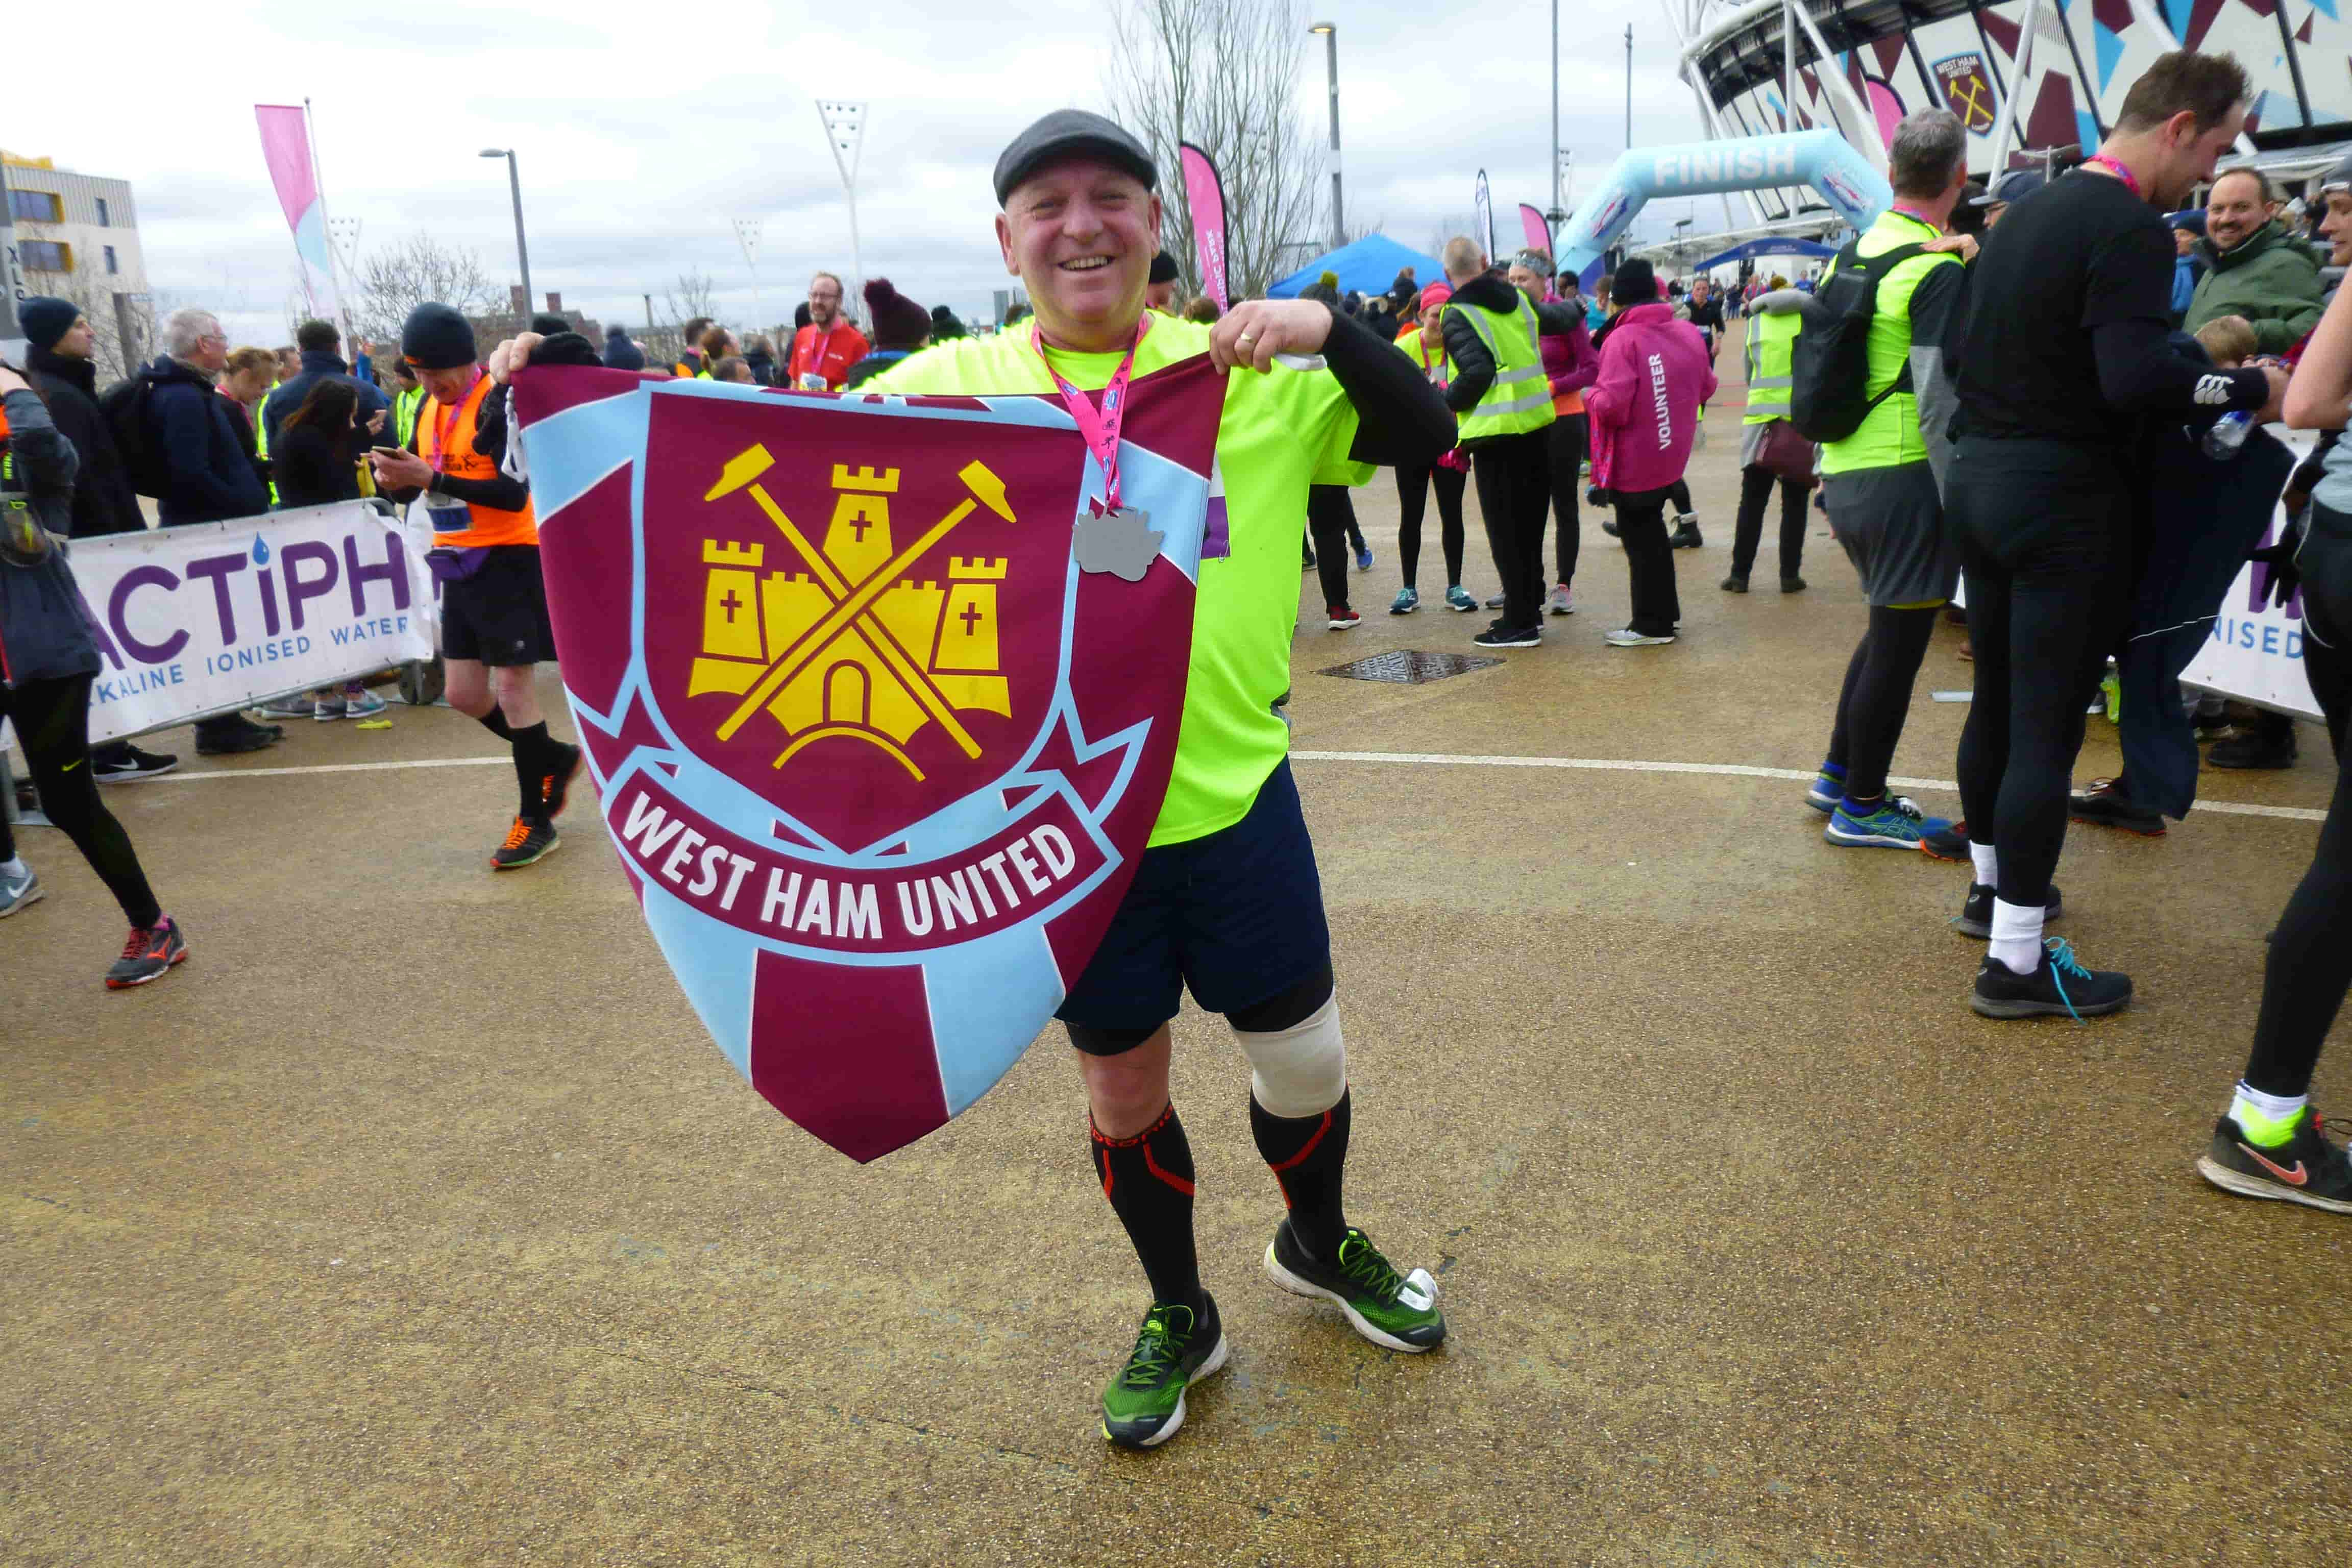 Richard ran a half marathon to raise money for Any Old Irons